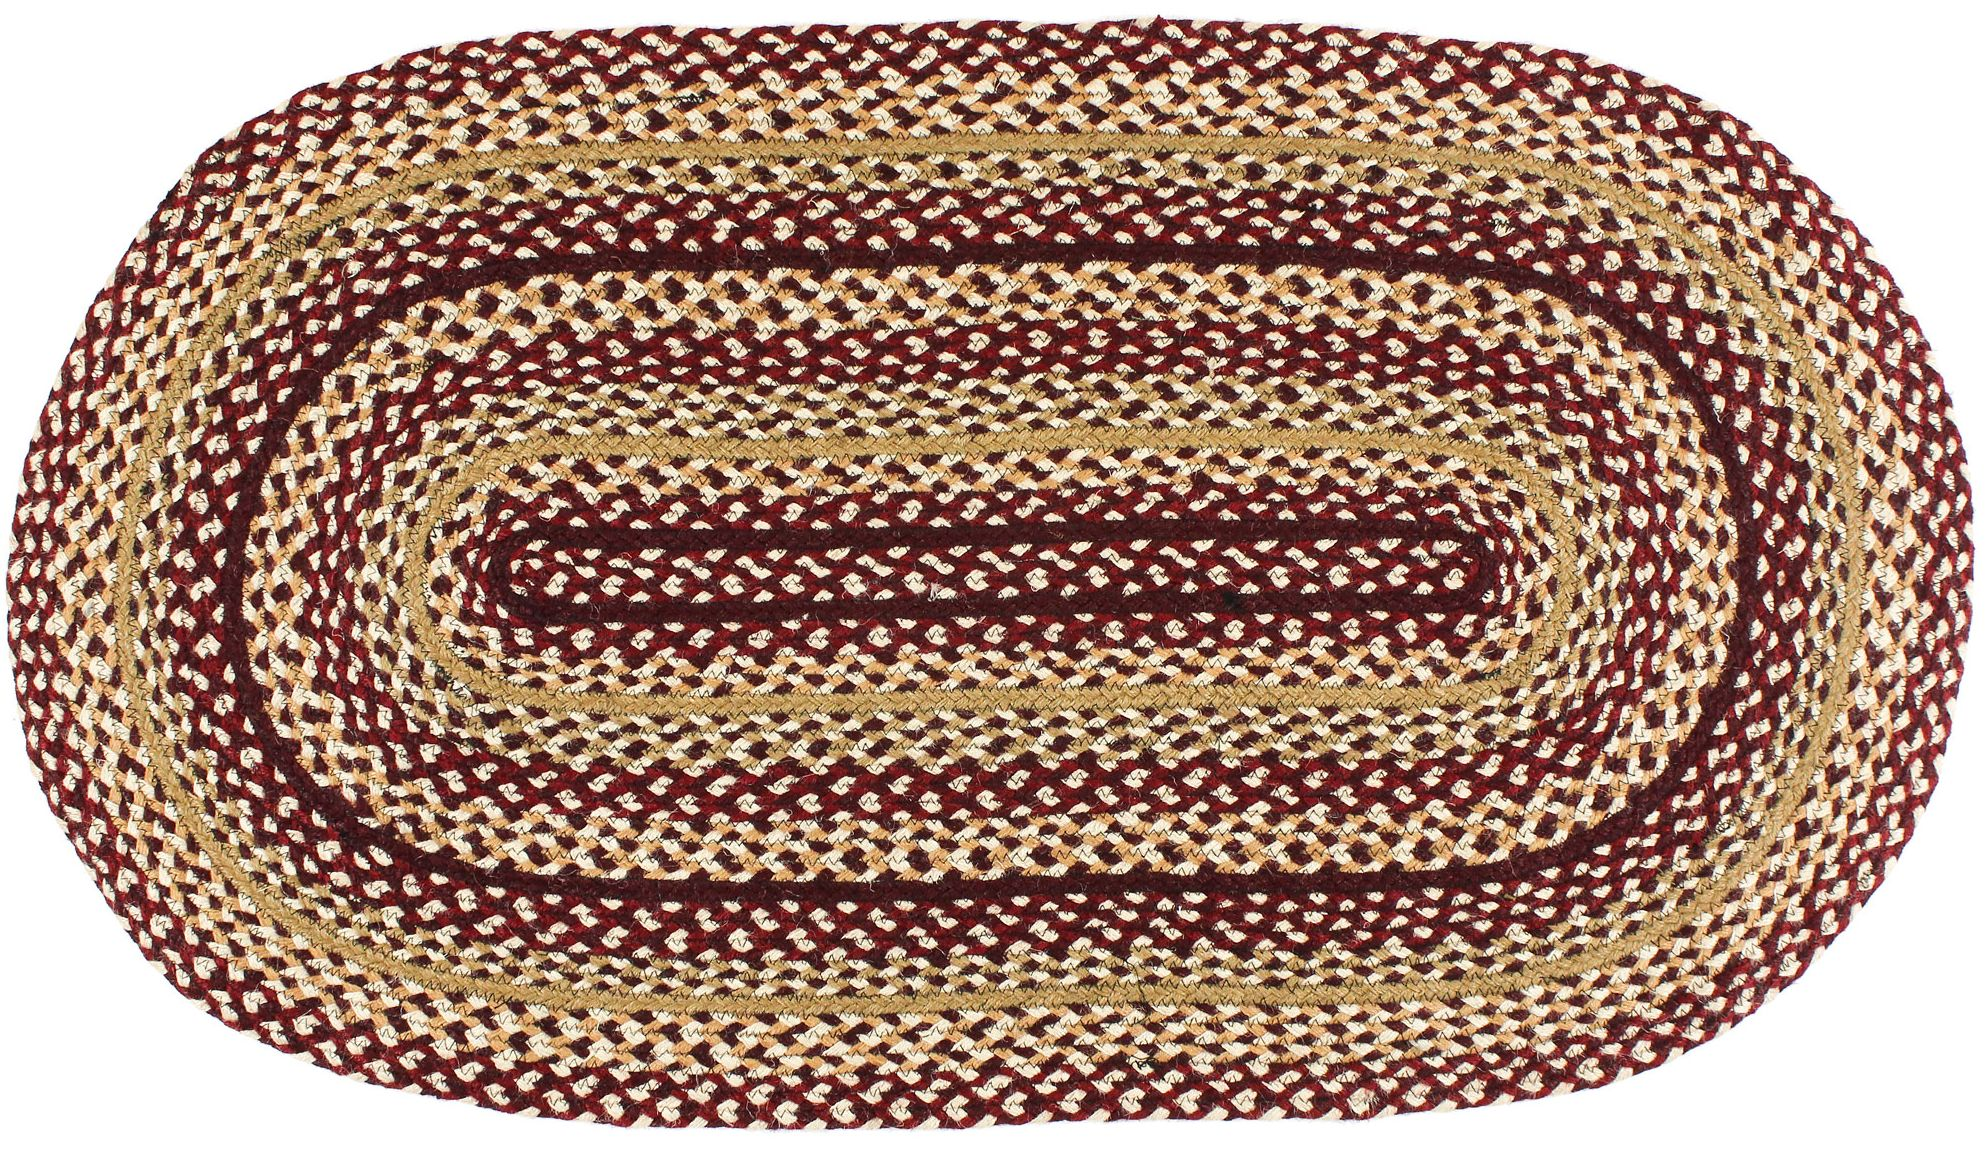 IHB-181-Checkerberry-Oval-Braided-Rug-LRG